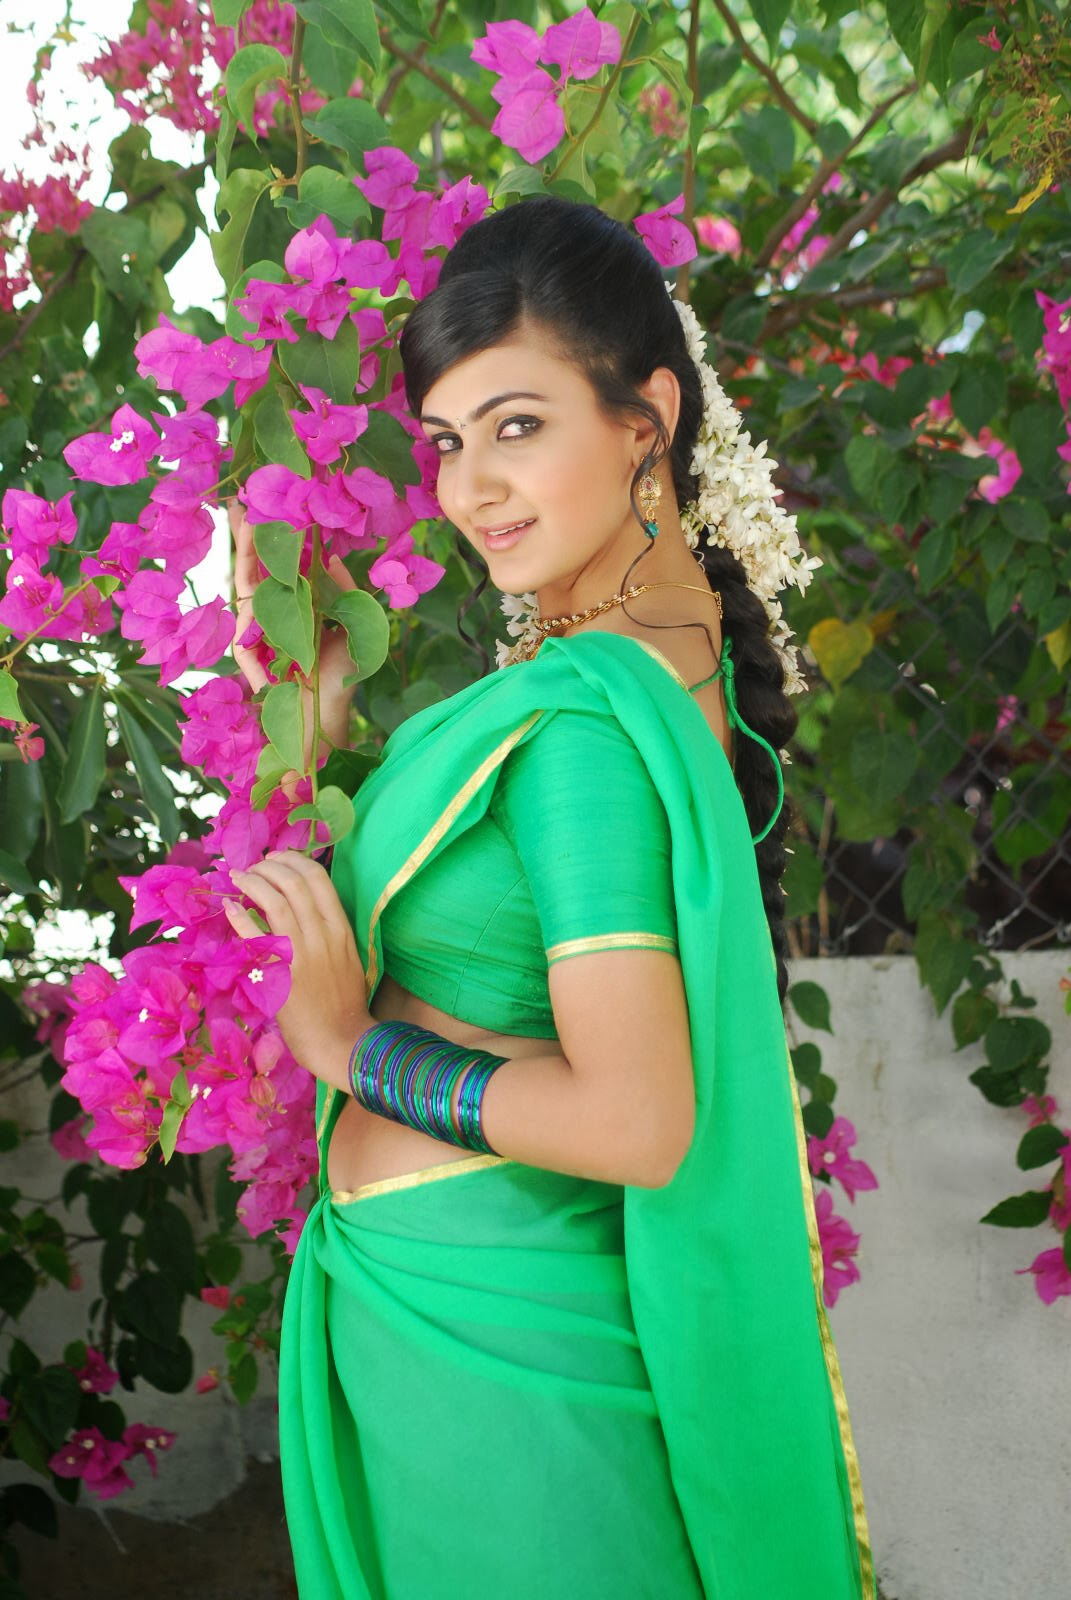 Neelam upadhyaya latest hot photos in green saree